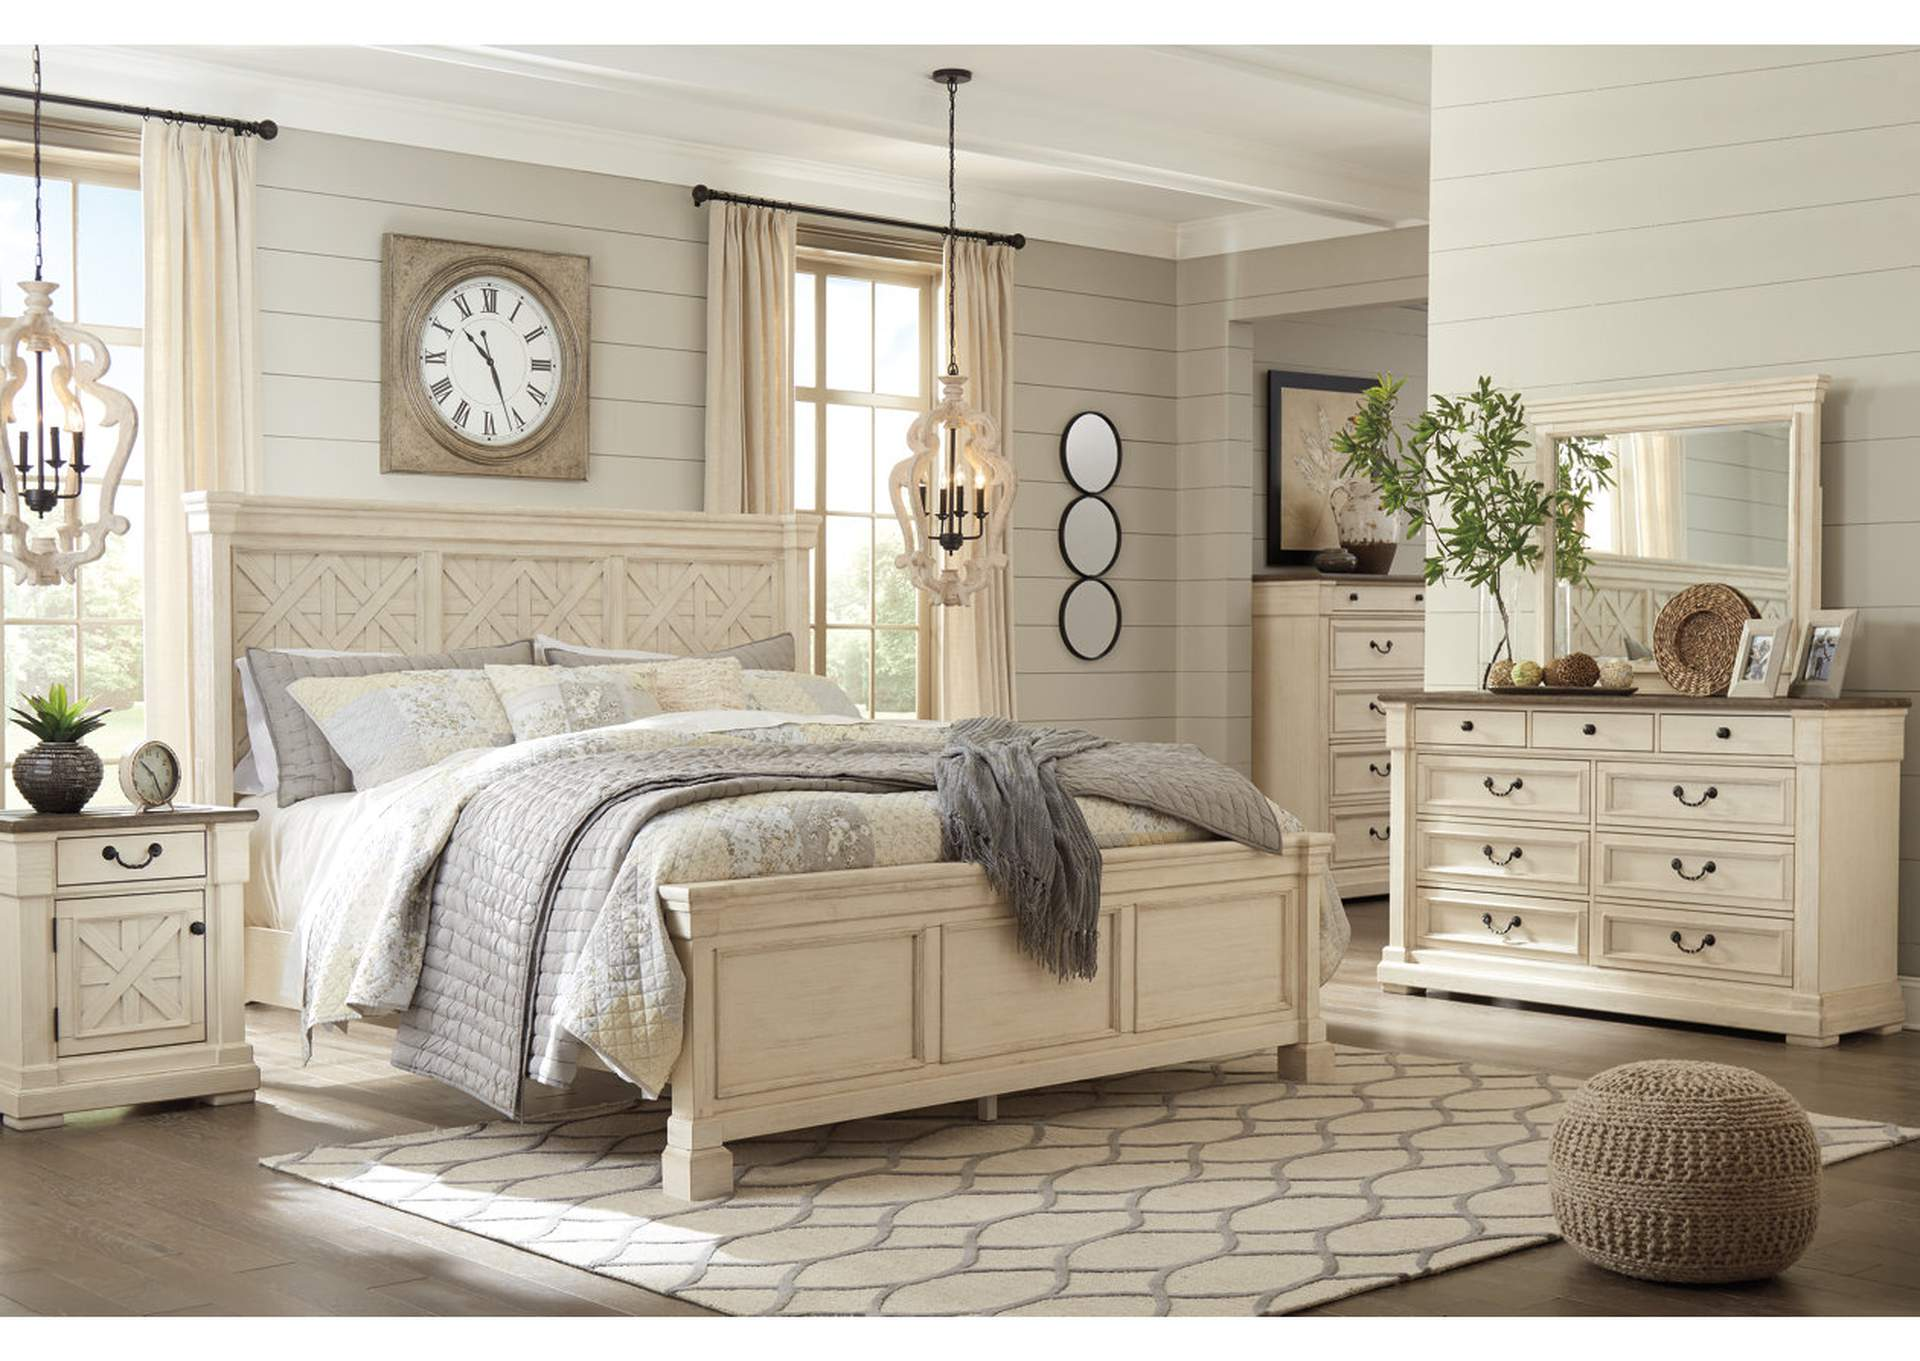 Bolanburg Antique White Queen Bed, Dresser, and Mirror,Signature Design By Ashley